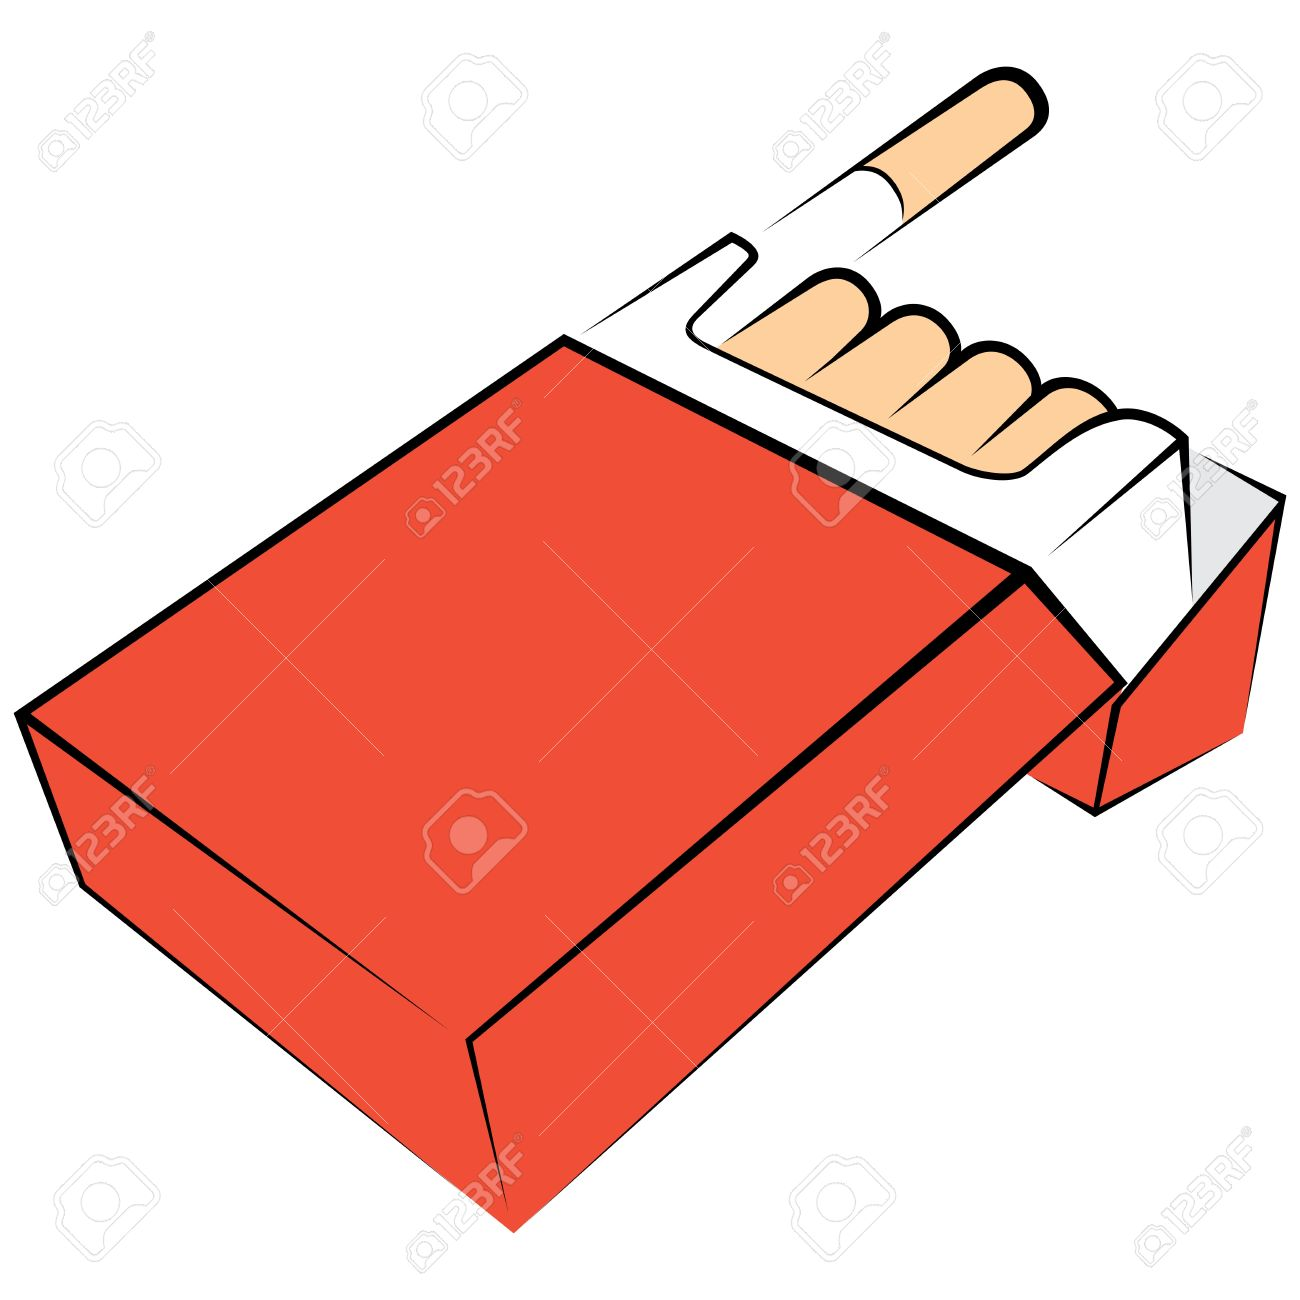 Cigarette clipart #8, Download drawings